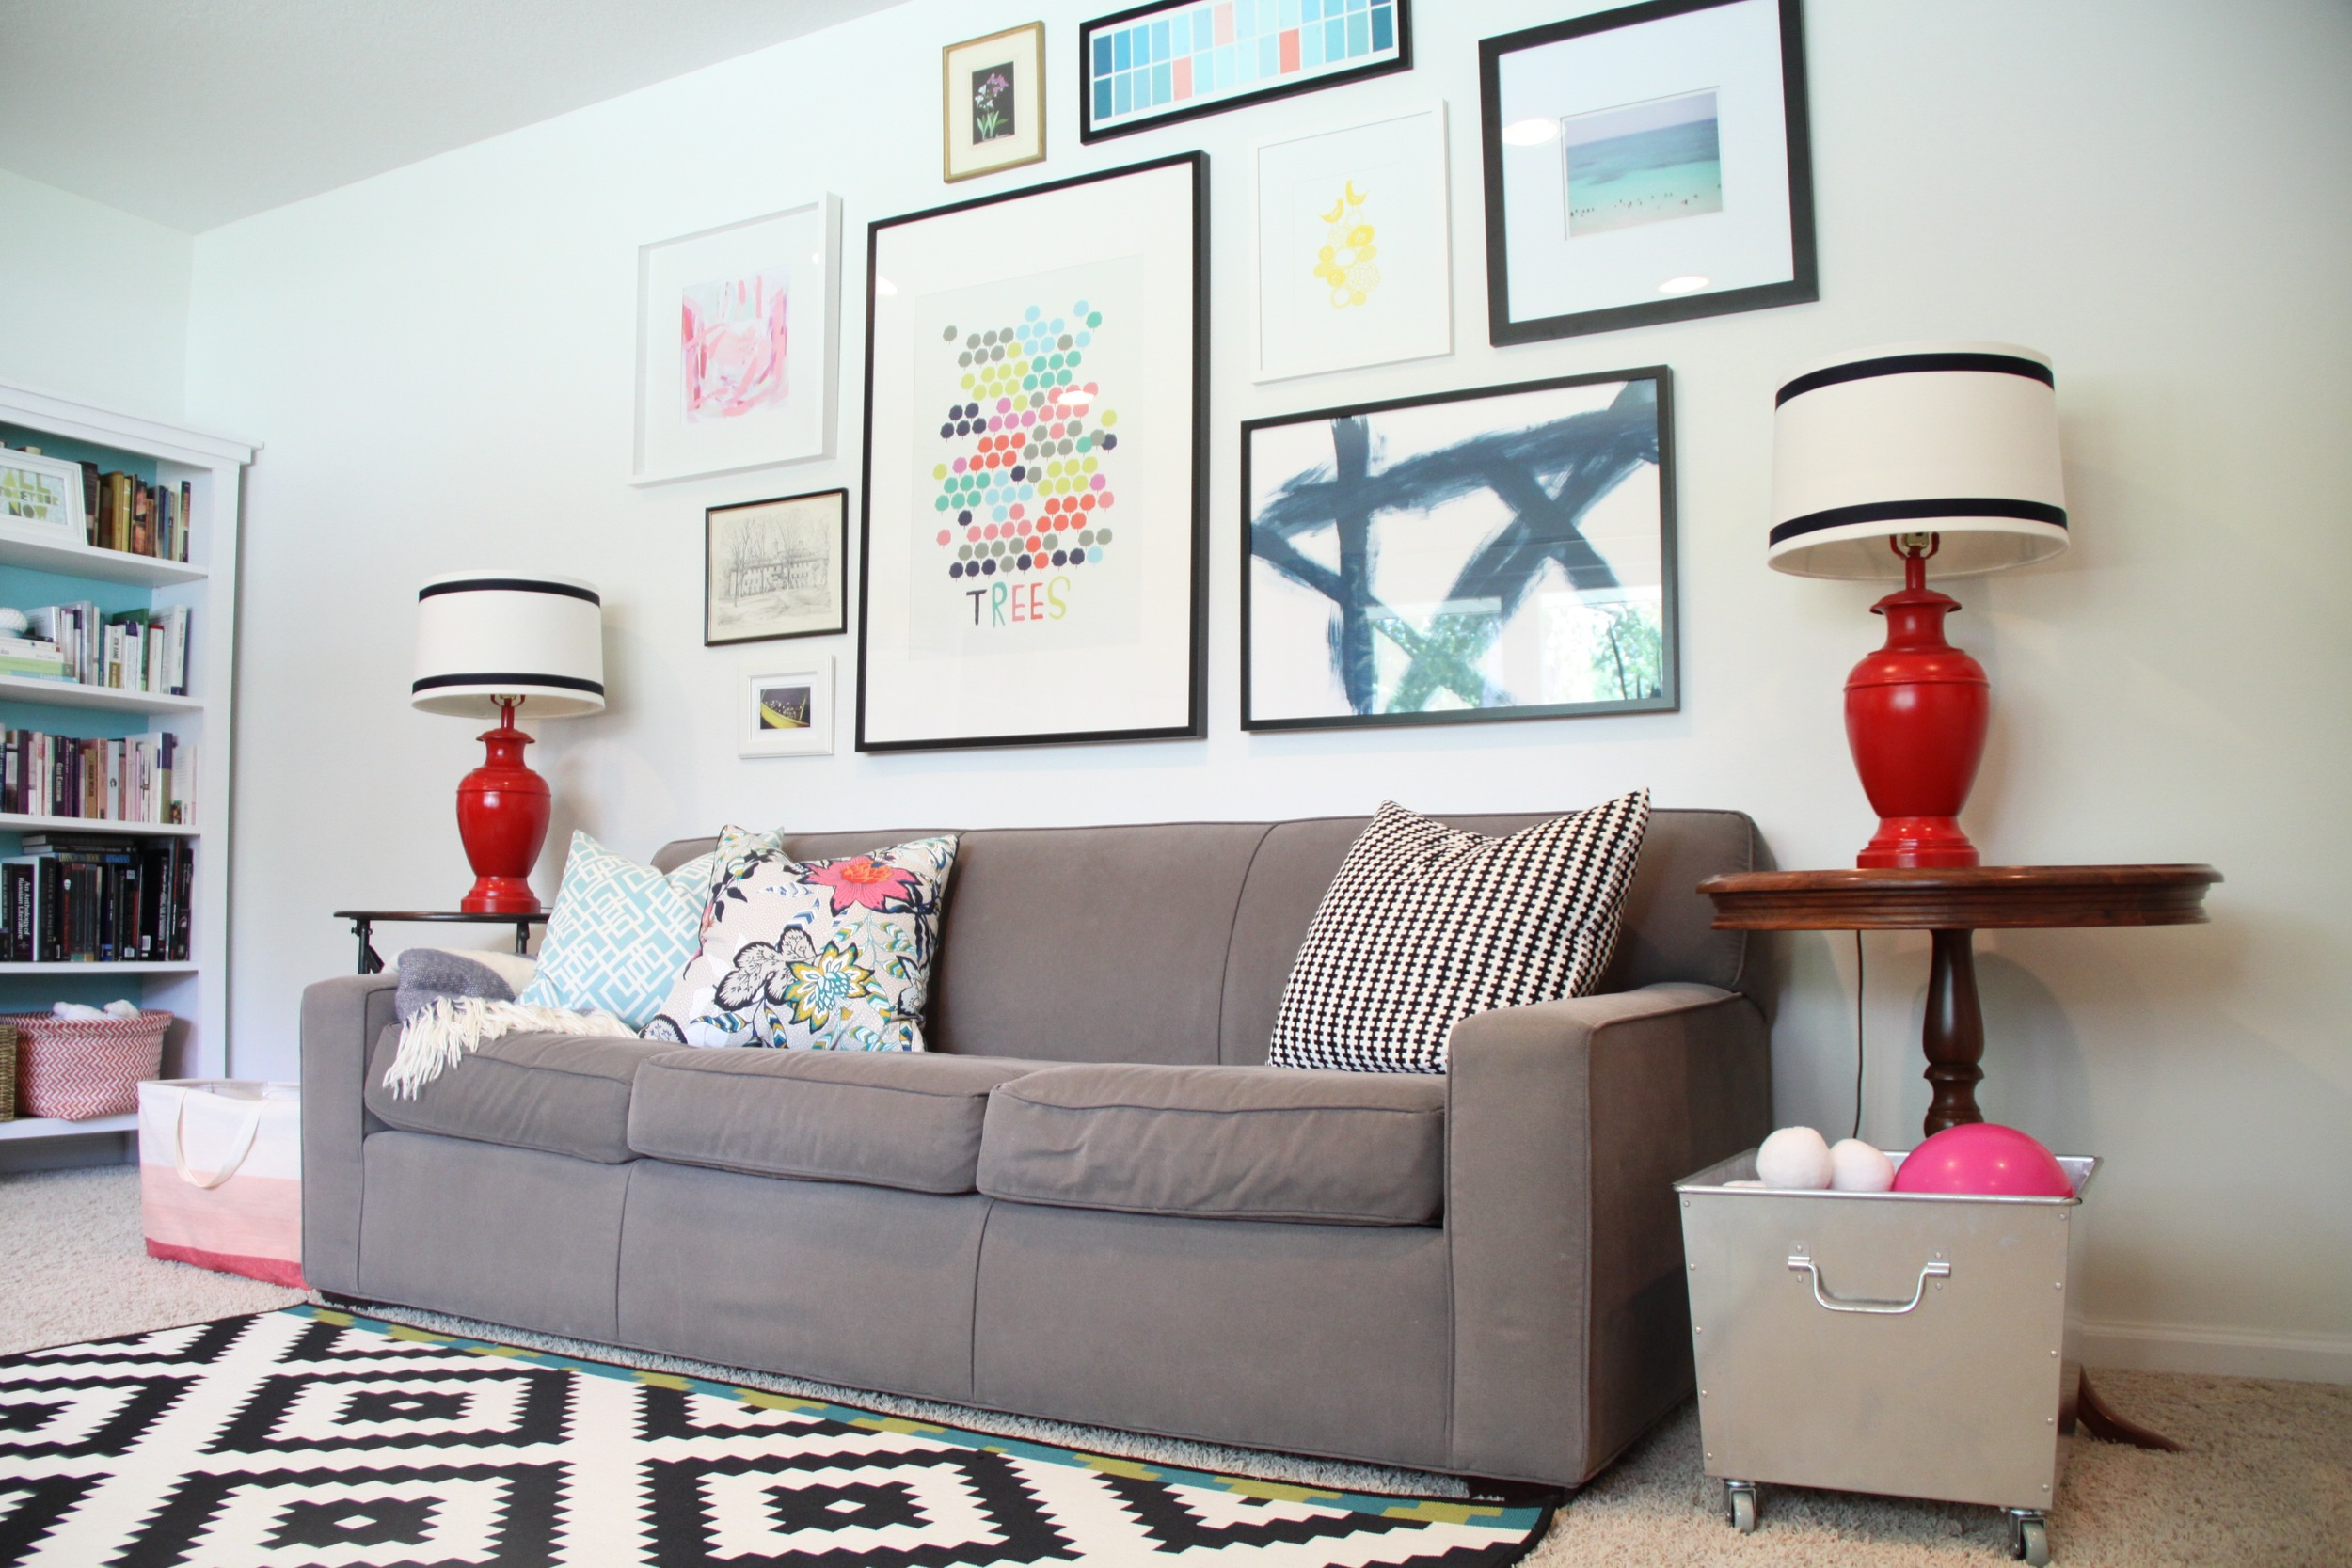 Living Room with Gallery Wall and Graphic Prints